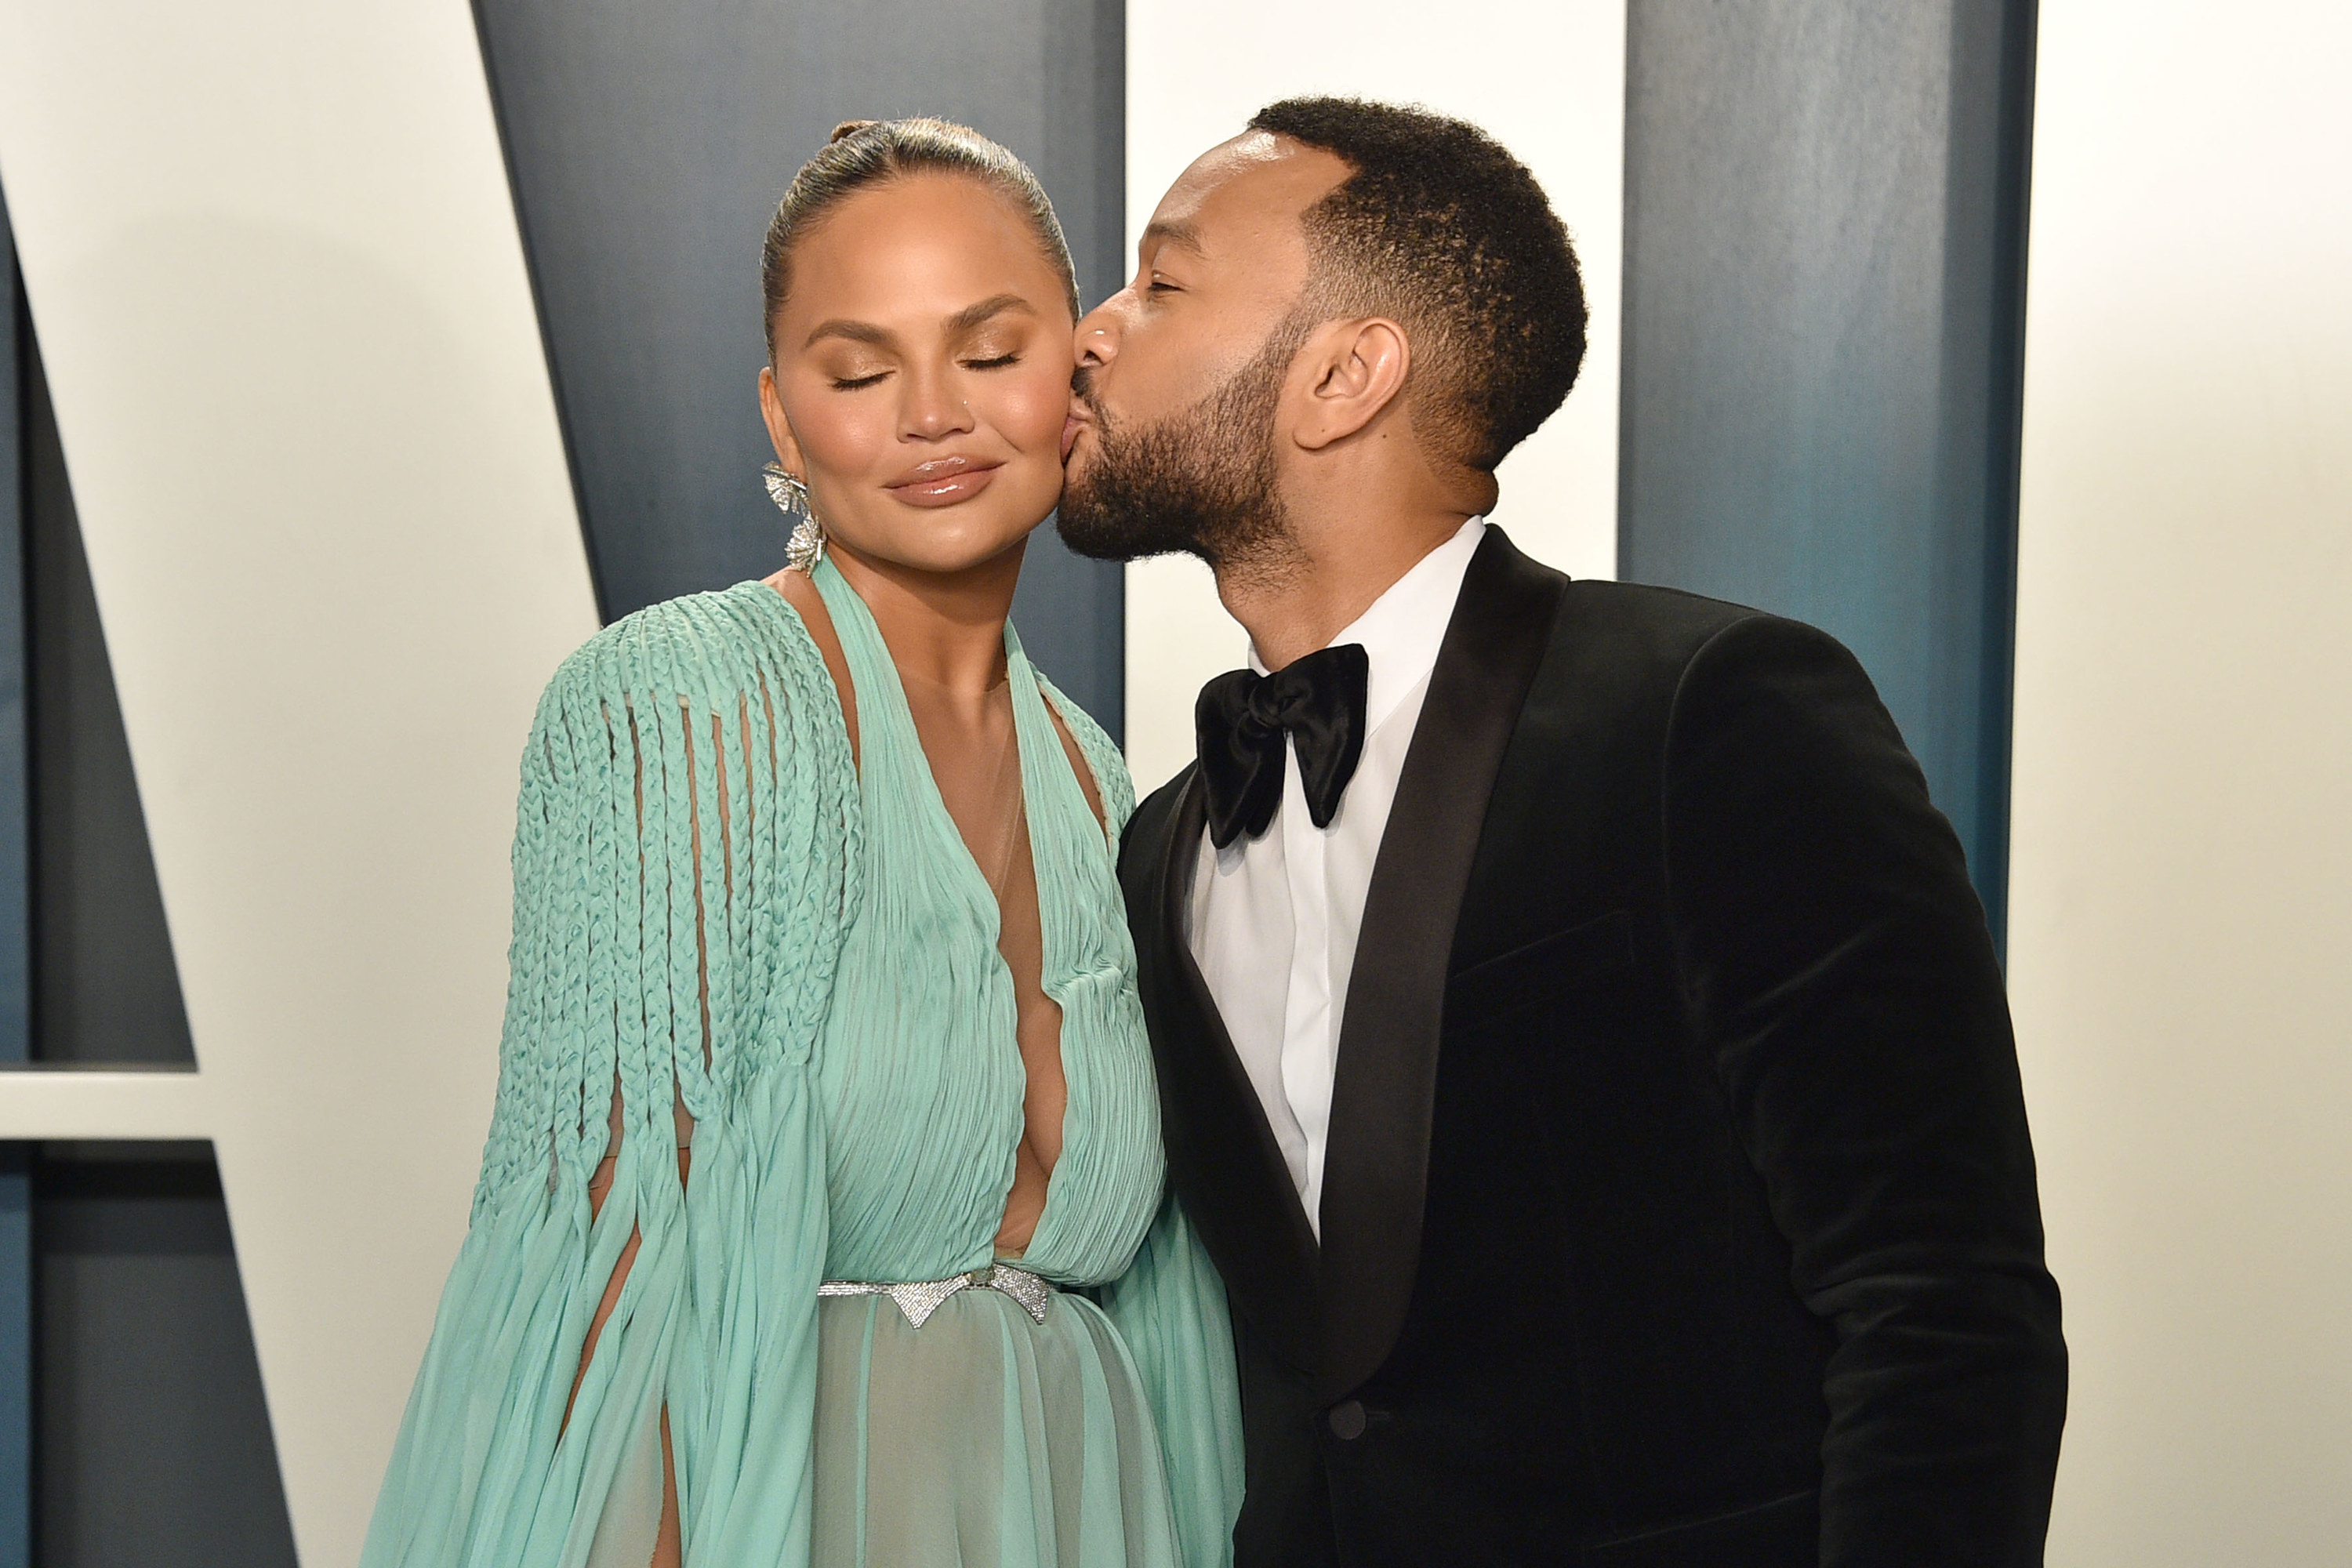 Chrissy Teigen and John Legend are pictured at the 2020 Vanity Fair Oscar Party